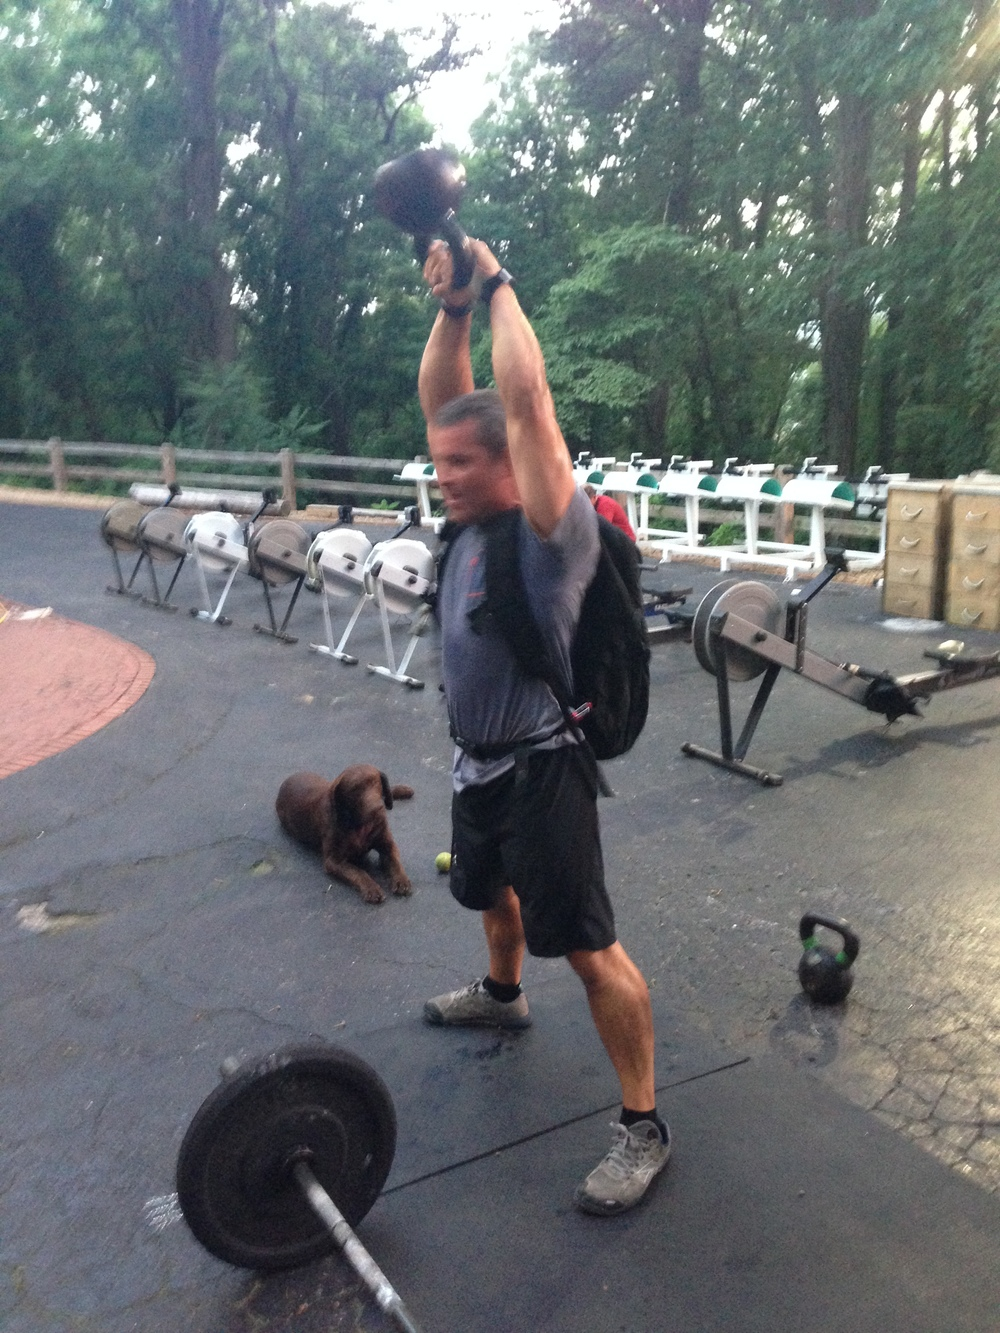 From this morning...30 lb ruck makes this extra tough